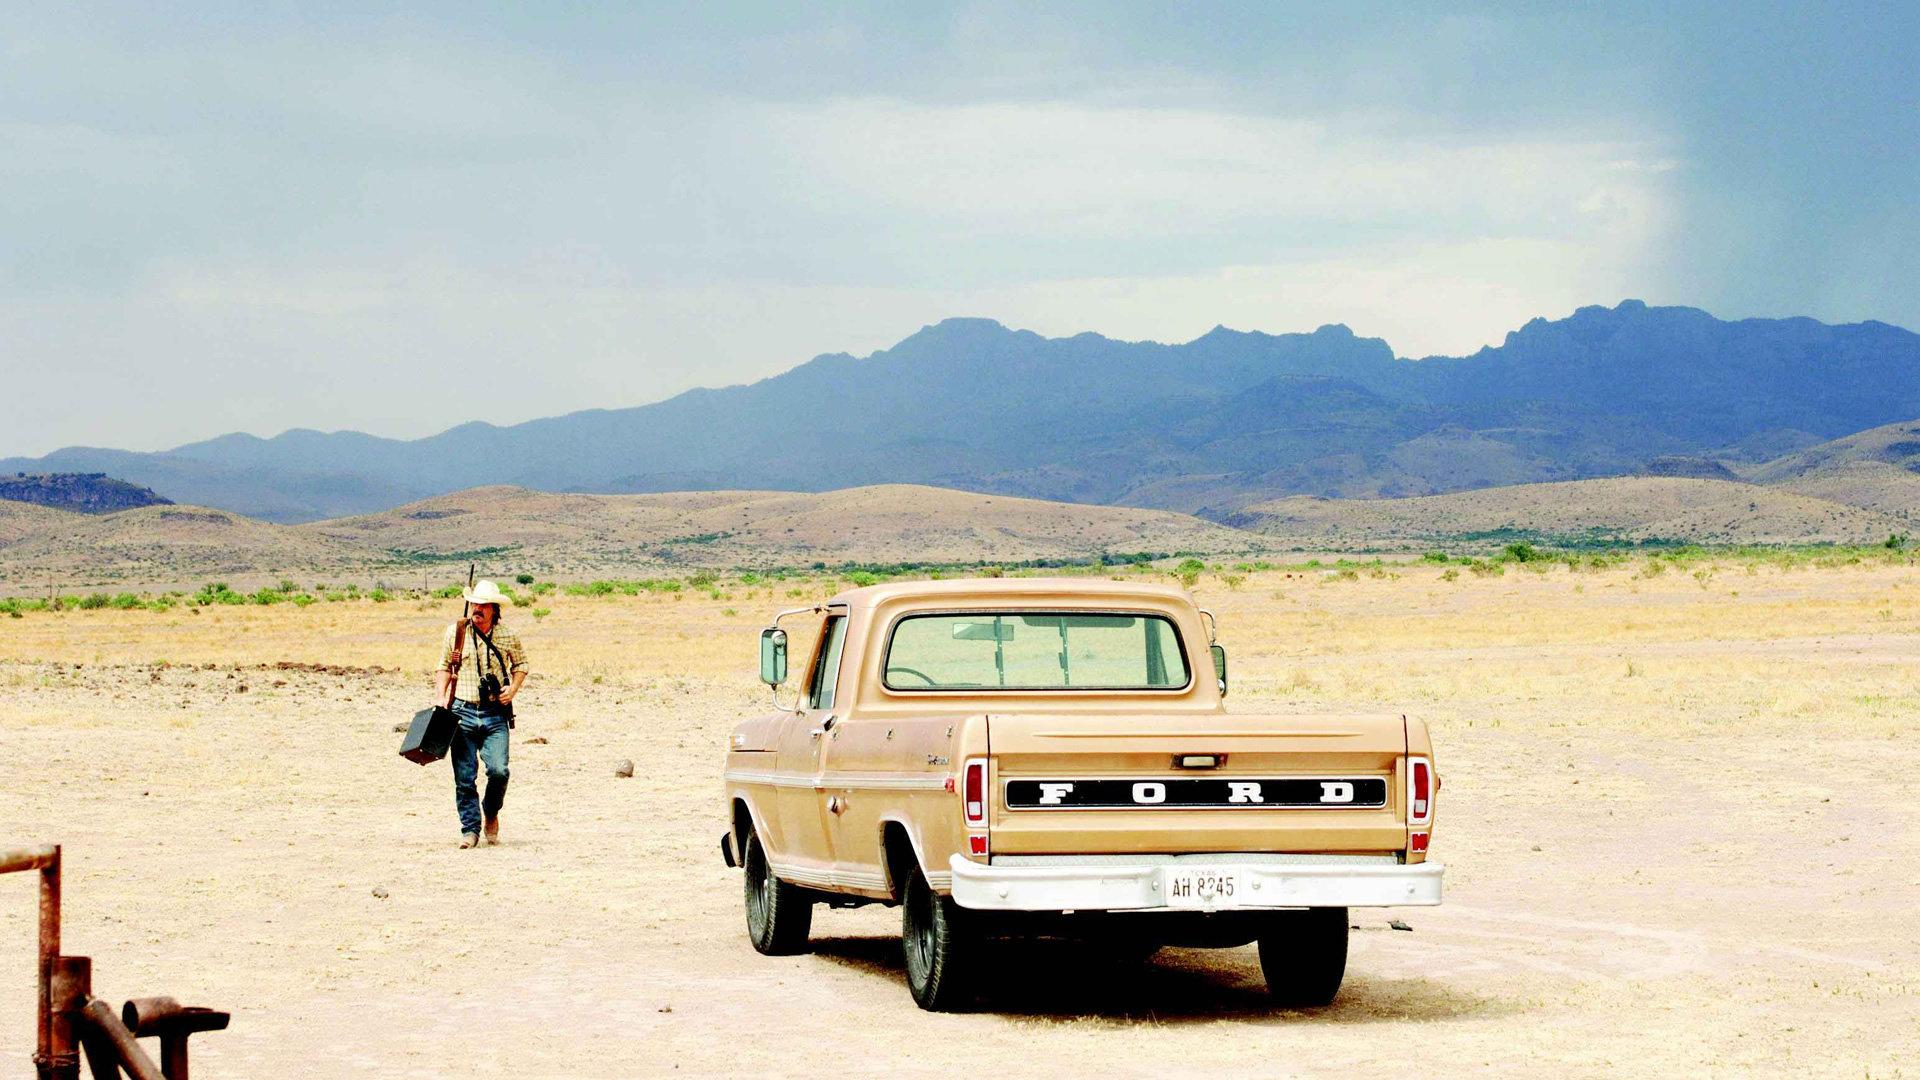 No Country For Old Men Vehicles Wallpaper 882922 Wallbase Cc